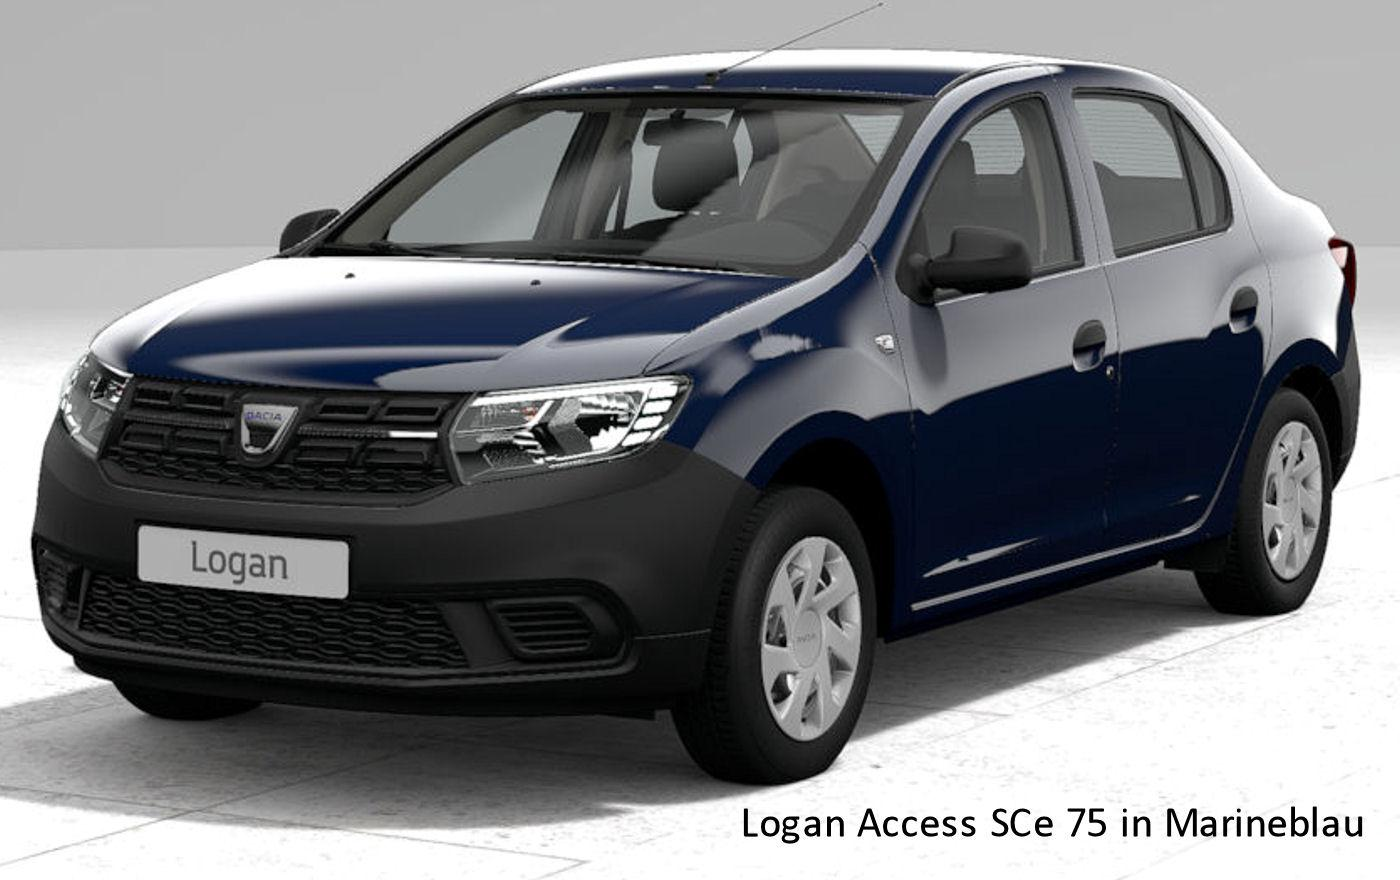 dacia logan access sce 75 auto goldammer. Black Bedroom Furniture Sets. Home Design Ideas